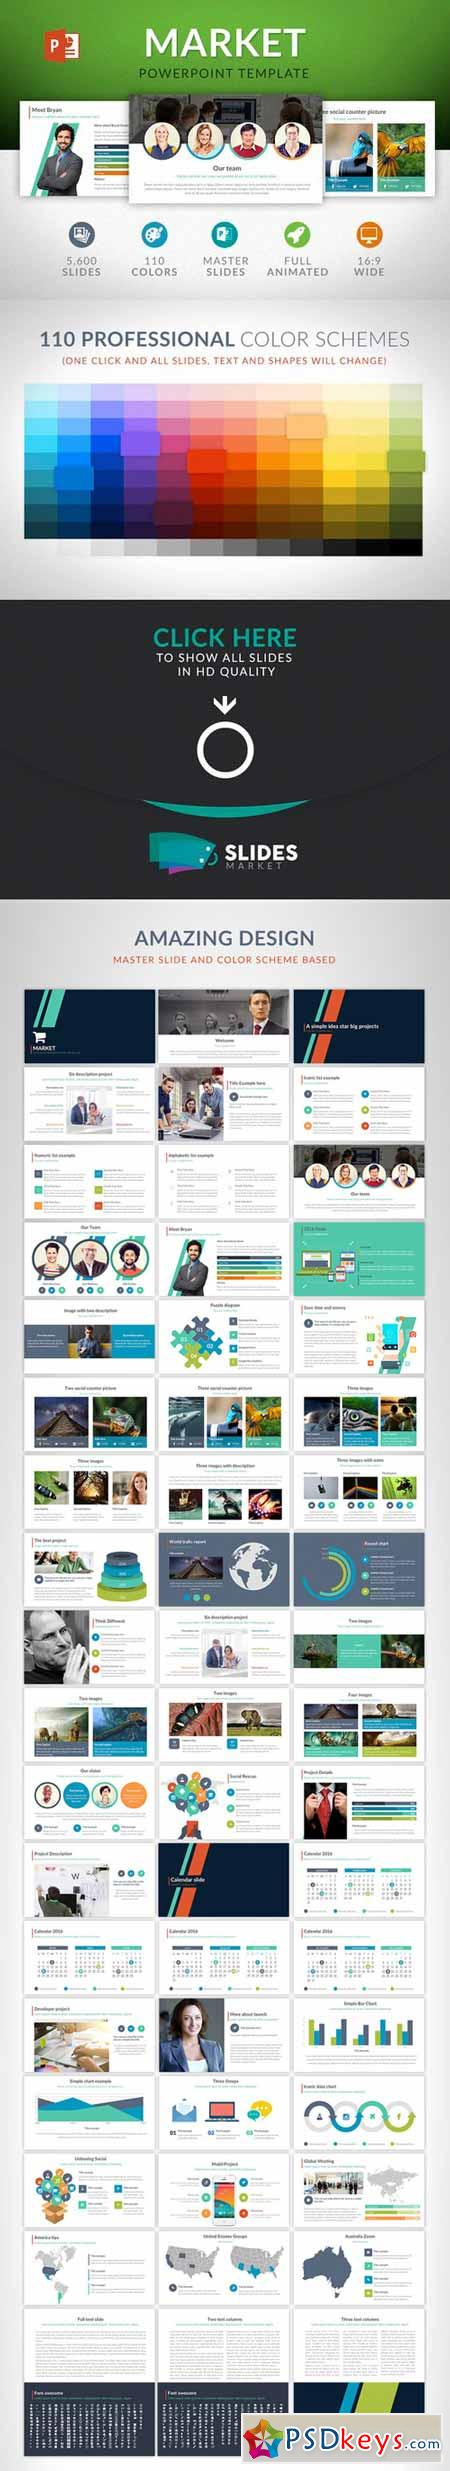 Market powerpoint template 412802 free download for Stock market ppt templates free download